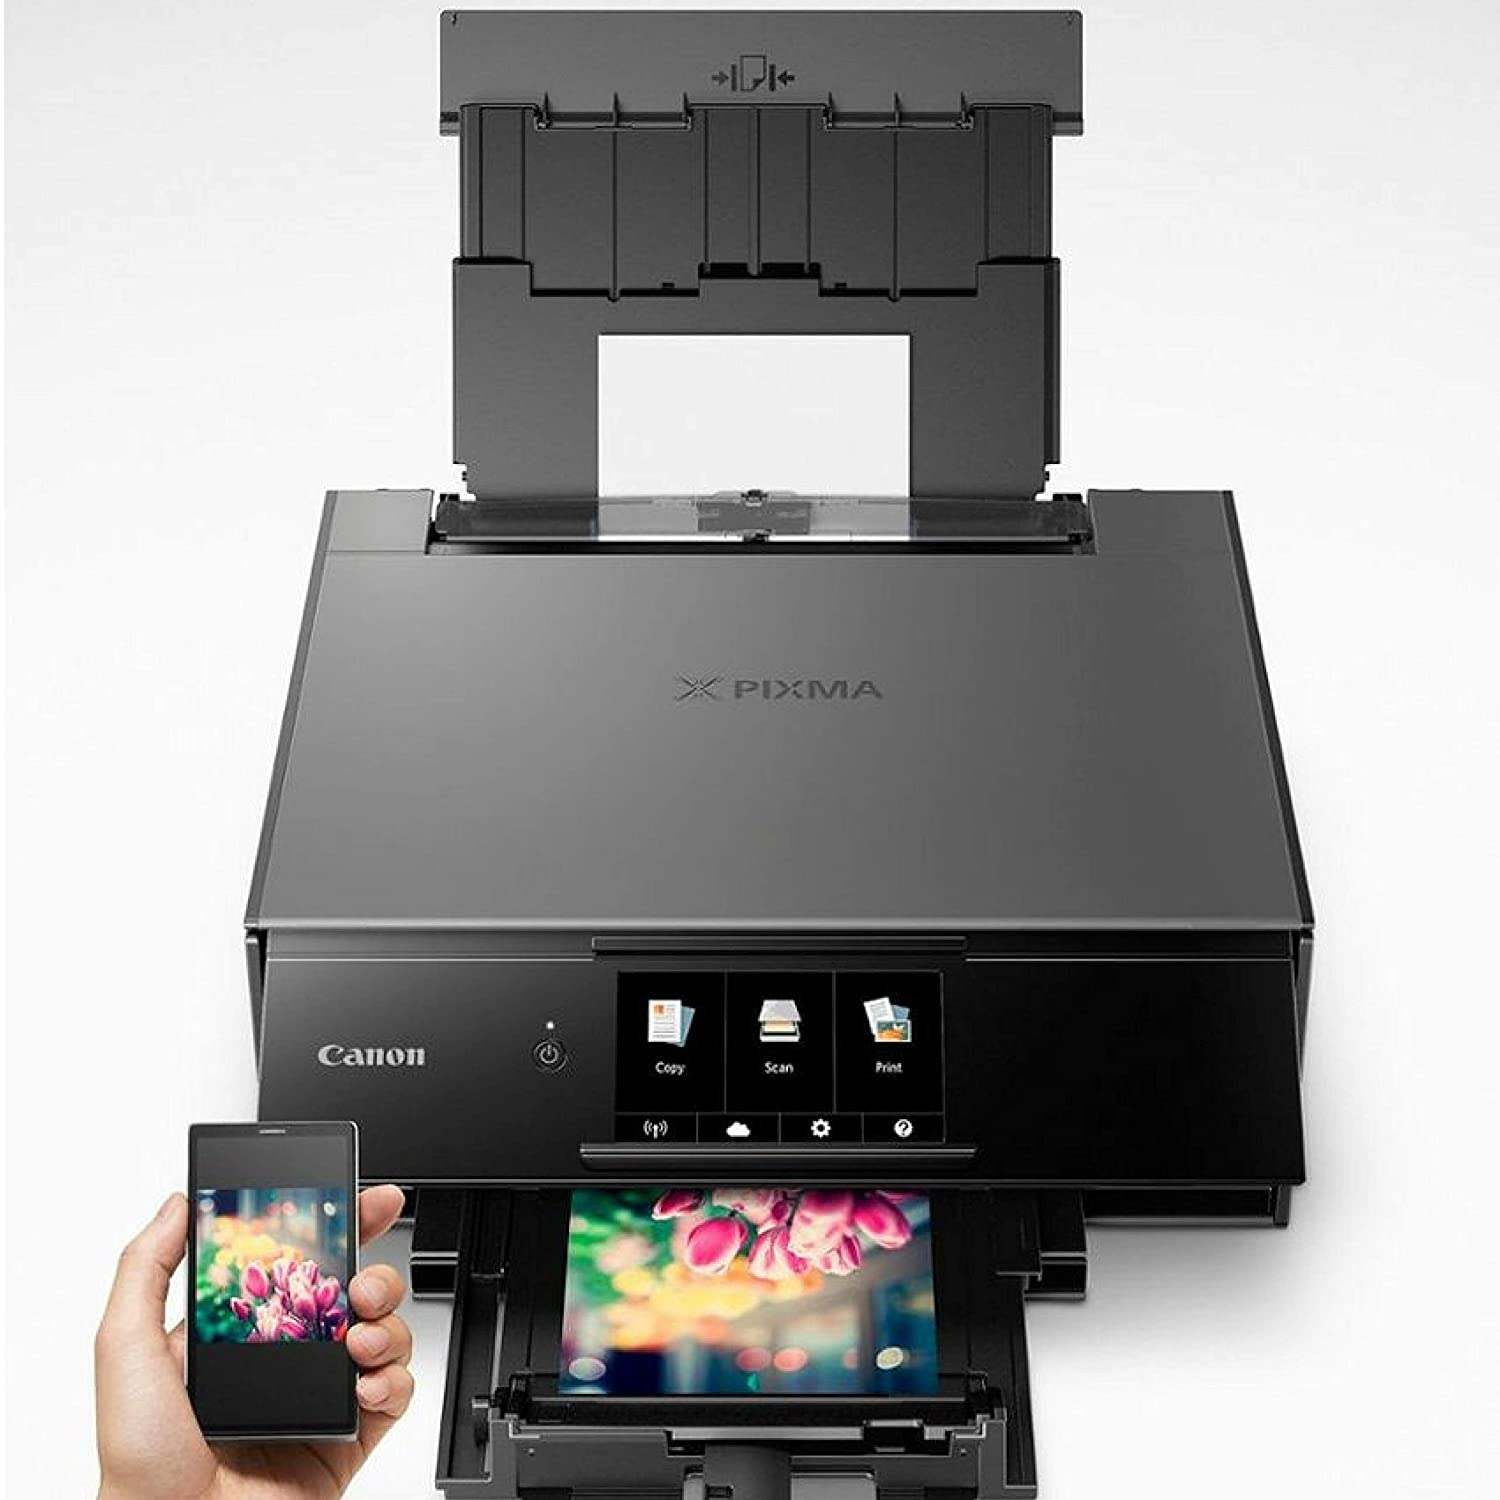 14.2 x 14.7 x 5.6 inches Black with AirPrint and Google Cloud Print Compatible Canon TS9120 Wireless All-in-One Printer with Scanner and Copier: Mobile and Tablet Printing